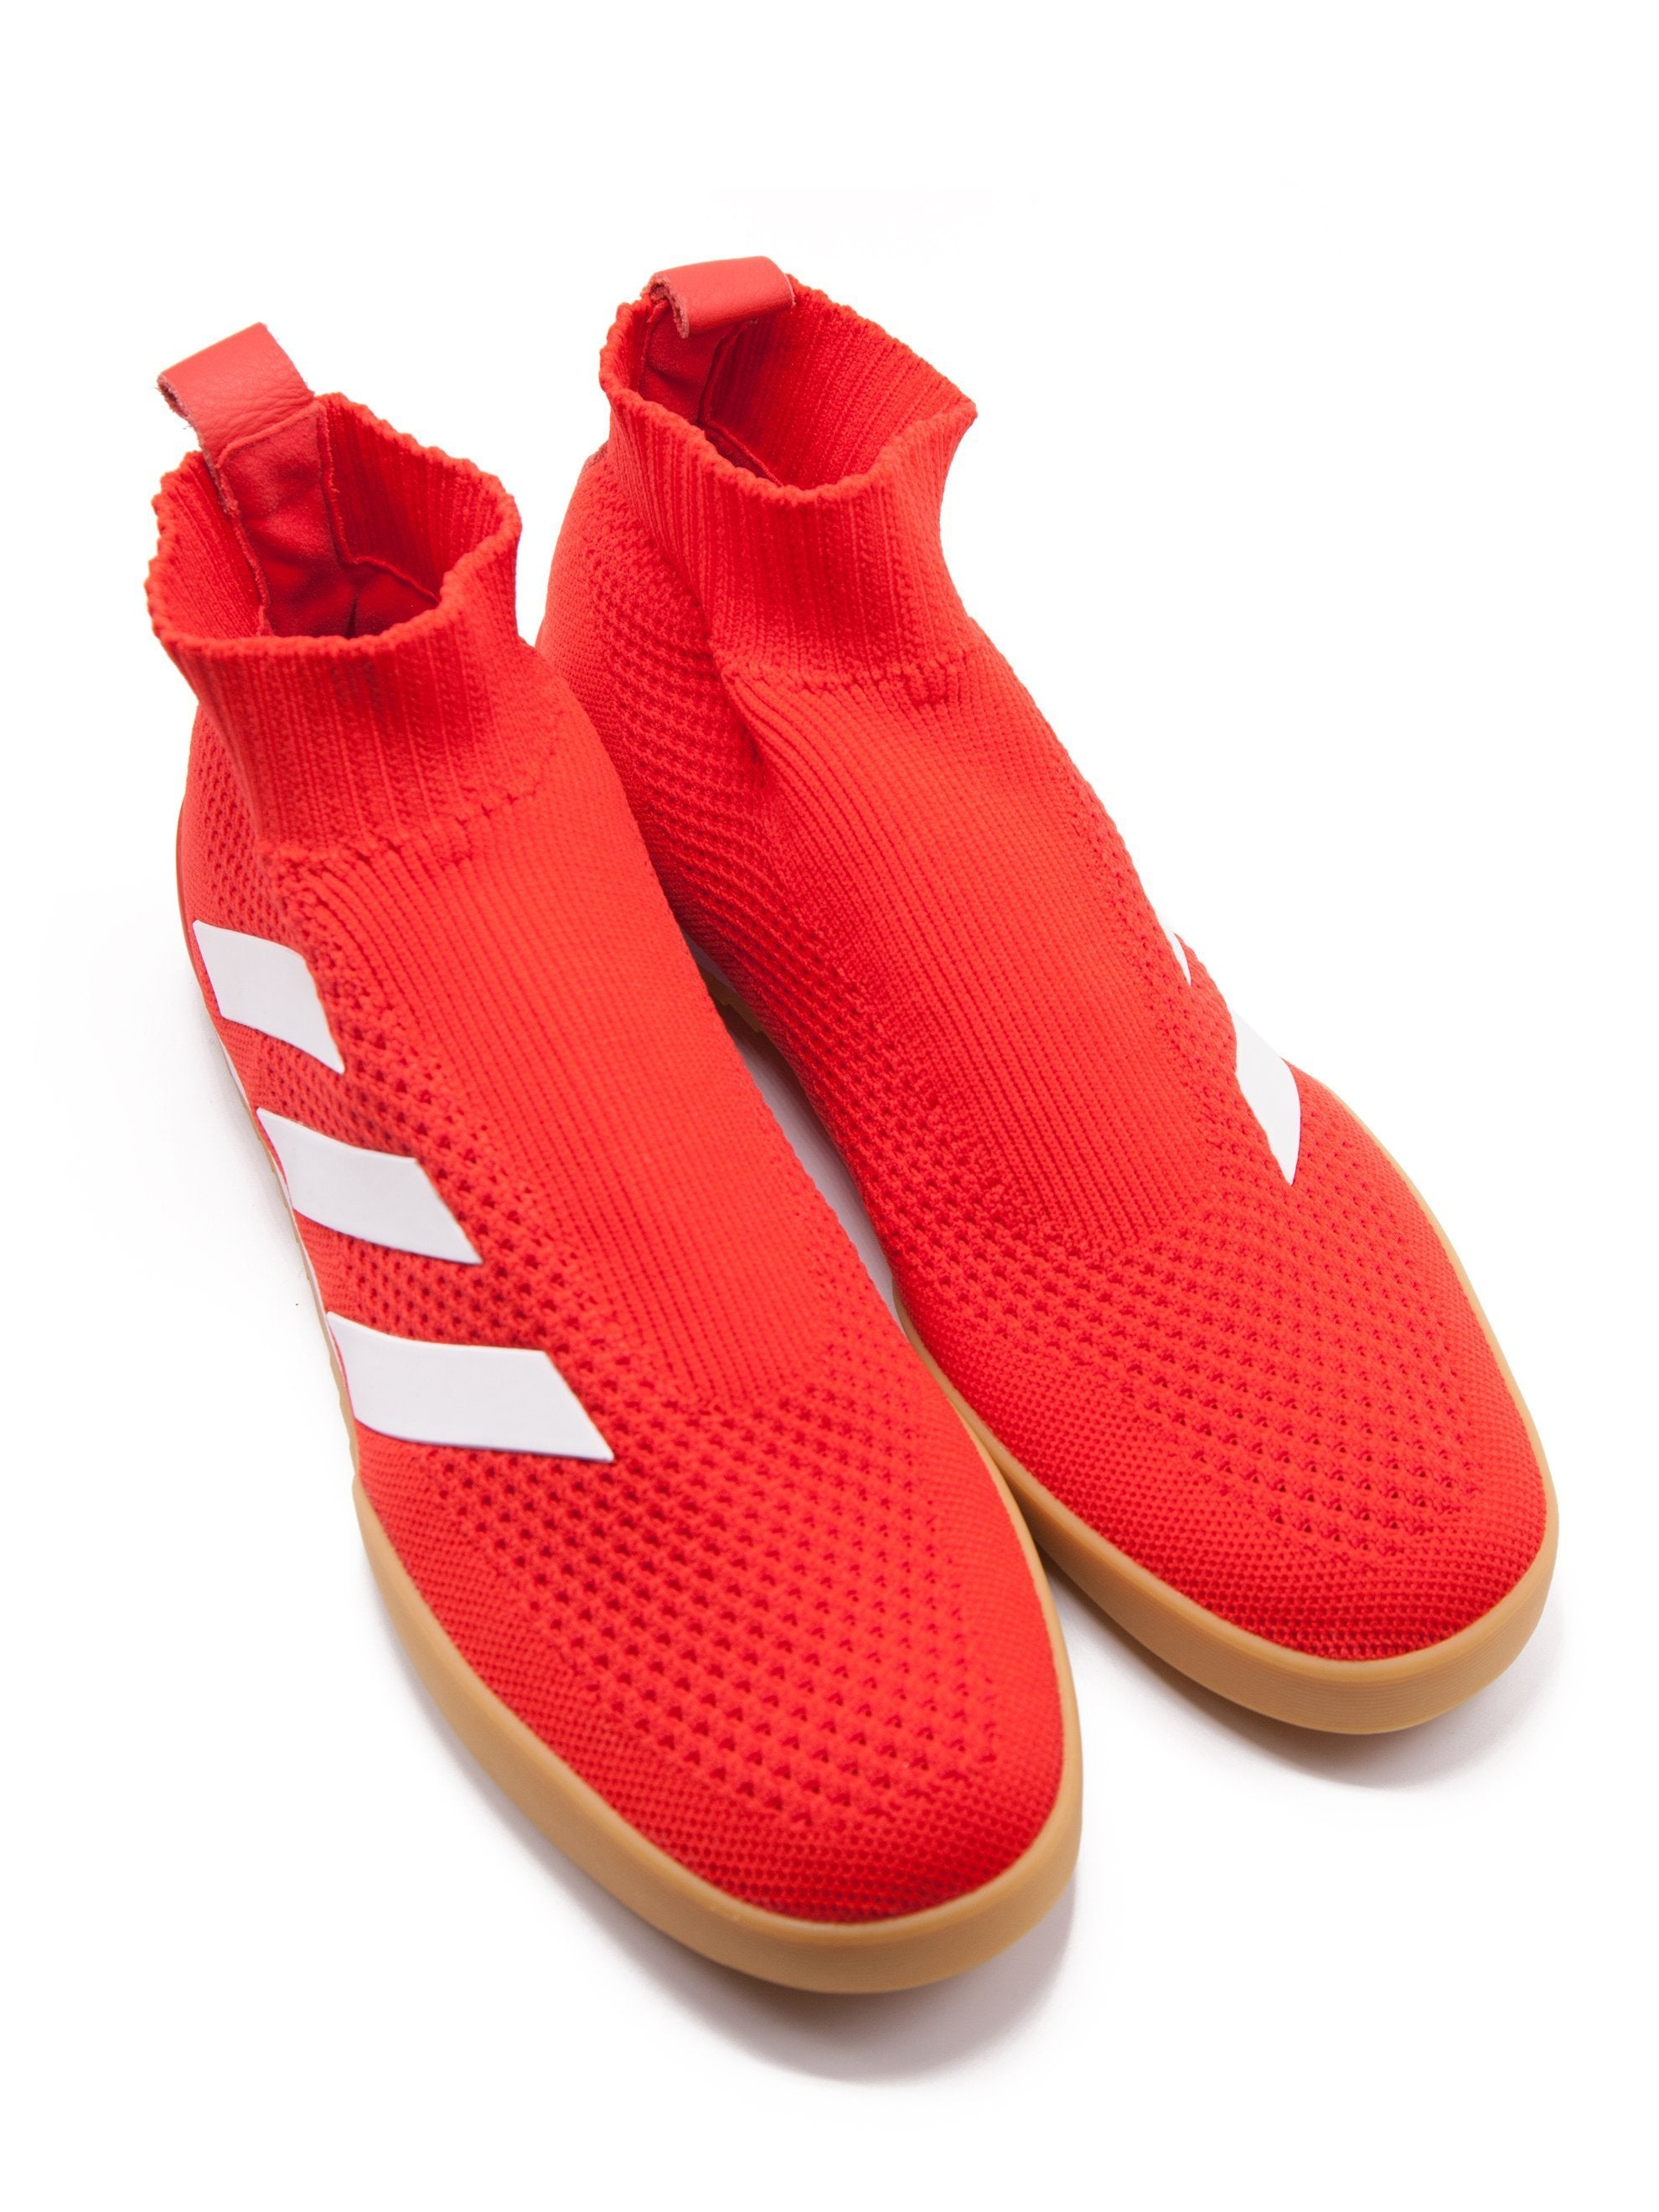 timeless design 72914 00809 Buy Gosha Rubchinskiy adidas Ace 16+ Super Shoes Online at ...